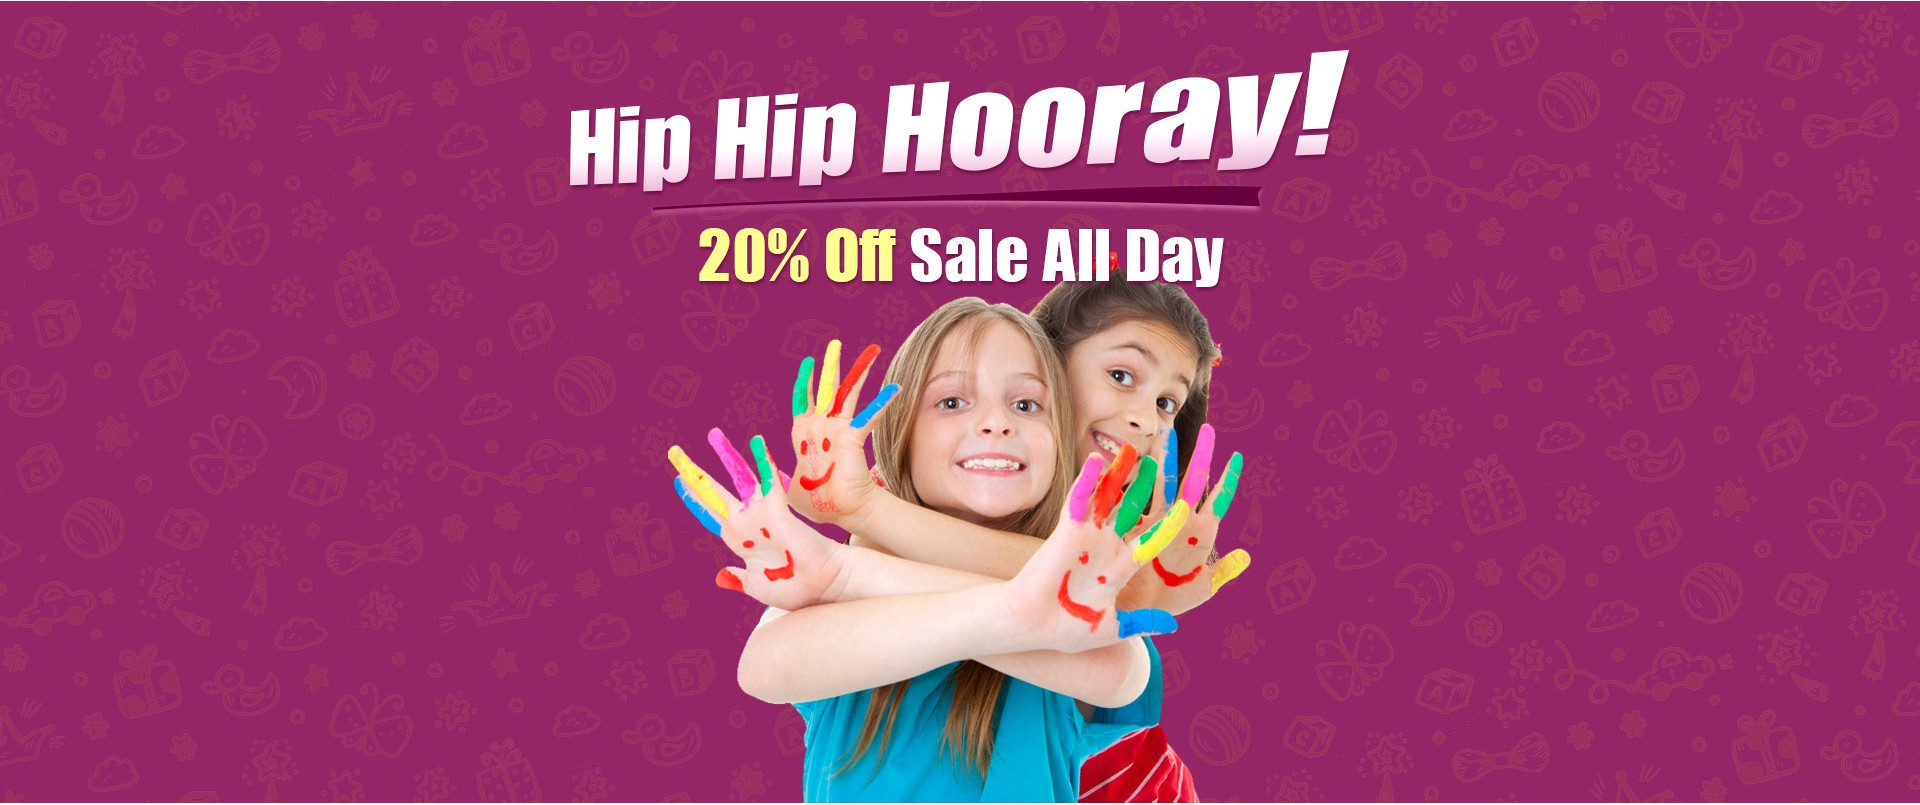 Hip Hip Hooray 20% Off Sale All Day